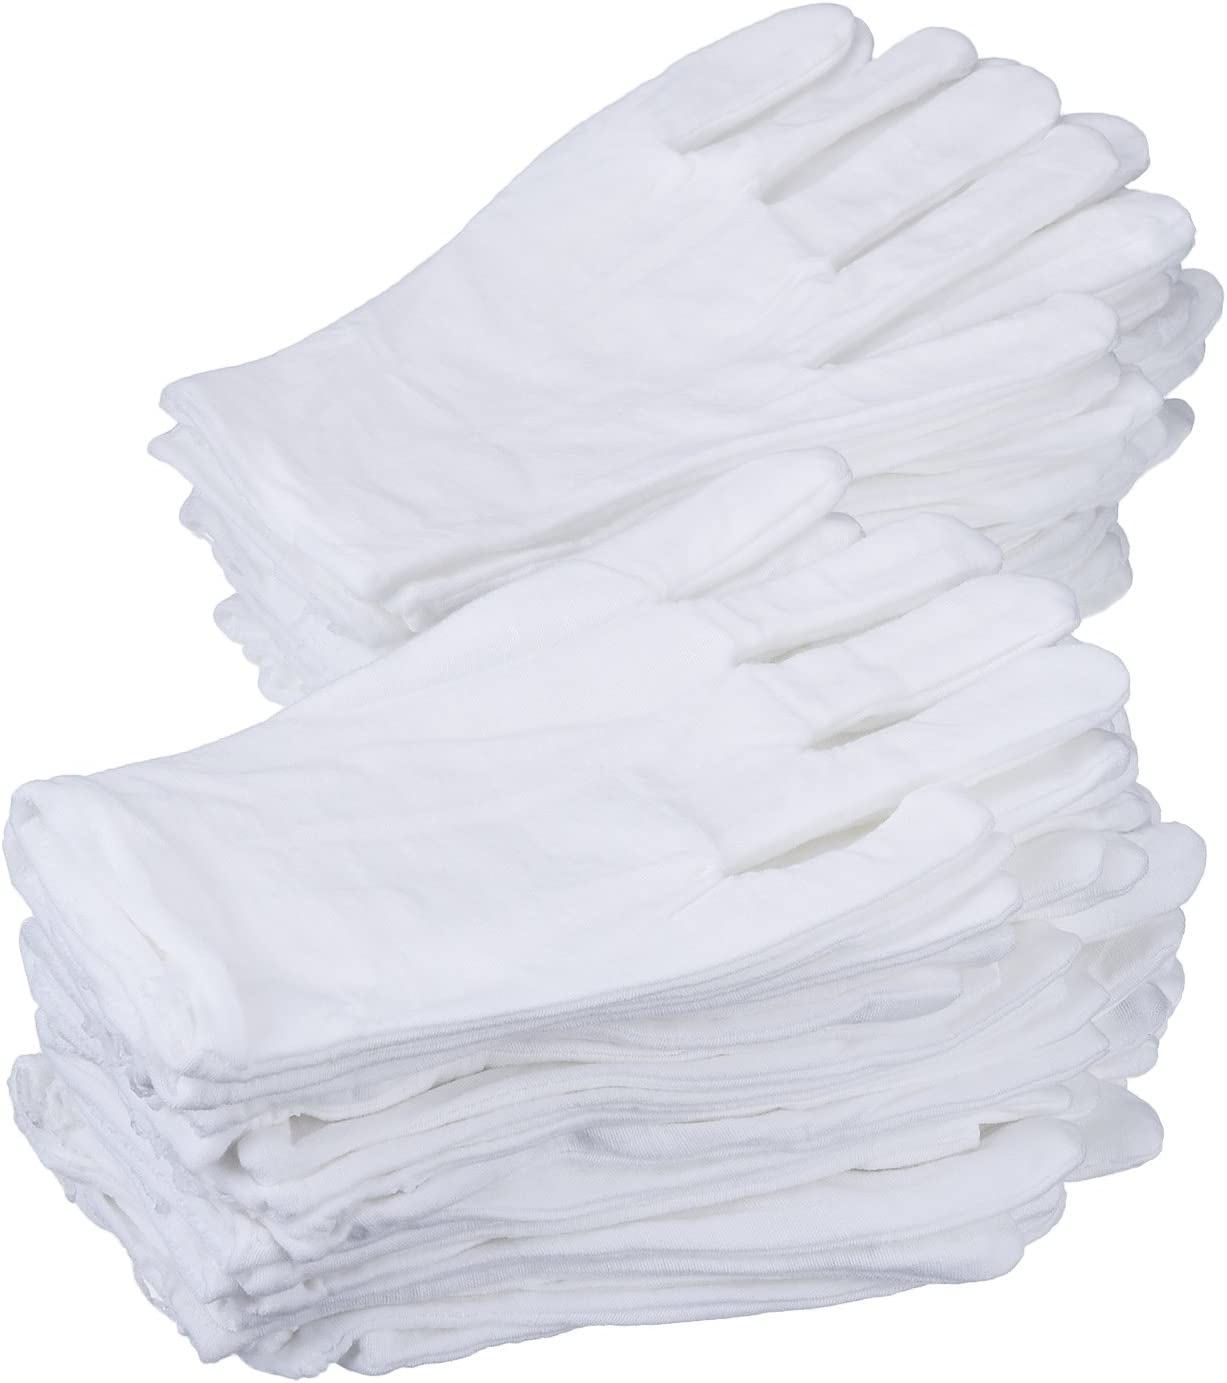 eBoot 24 Pairs 8 New Shipping Free Inches Gloves store Medium Cotton White Work